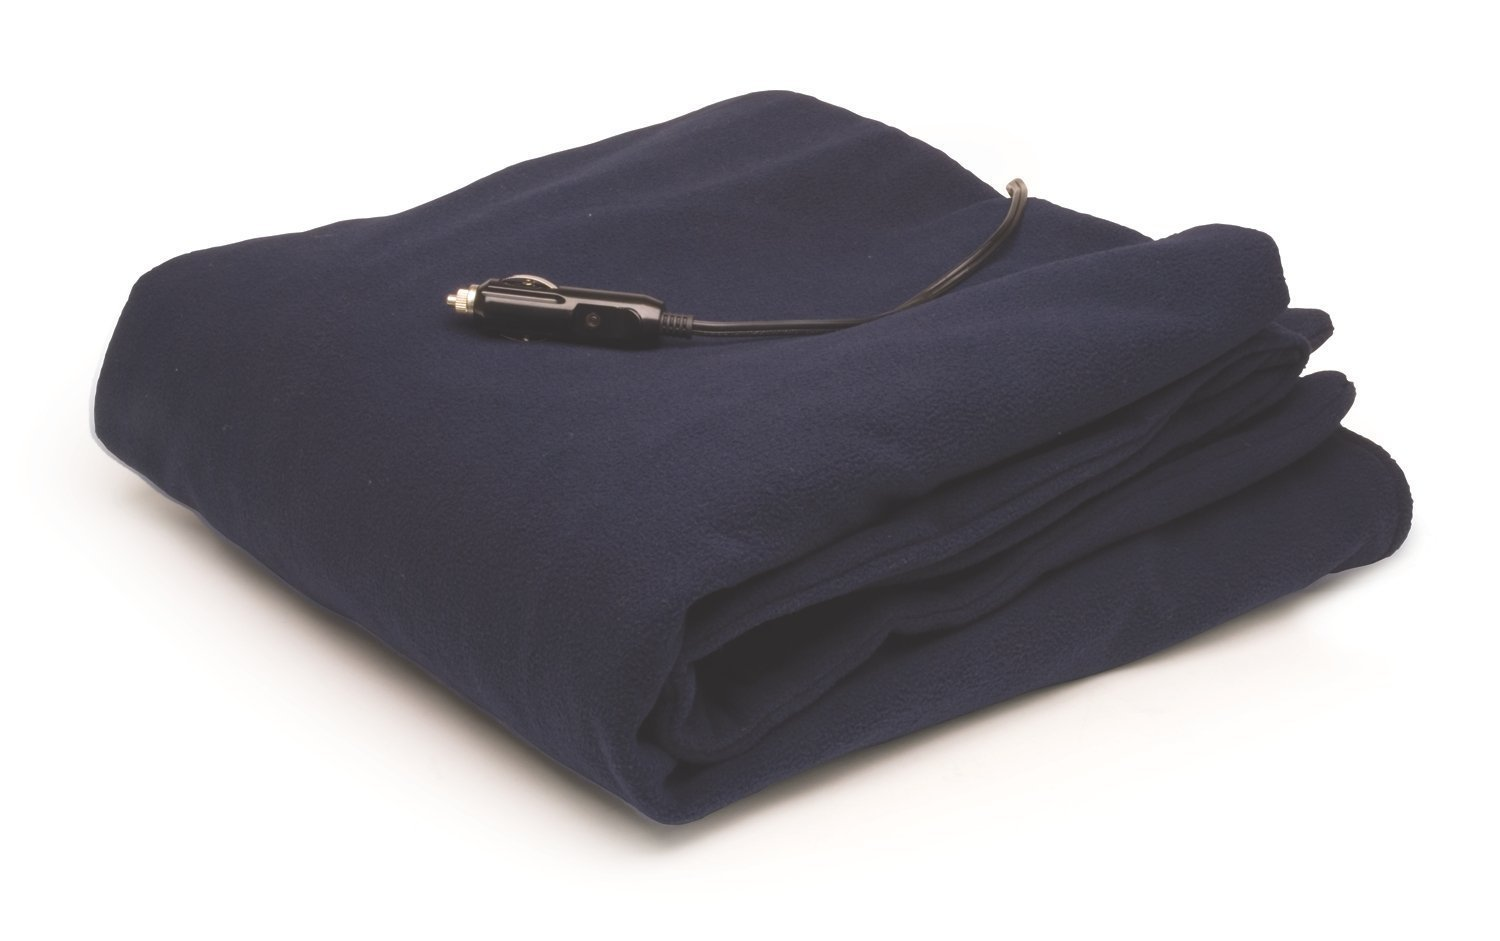 Details About Roadpro Rphb 110db 12 Volt 58x42 5 Fleece Heated Blanket